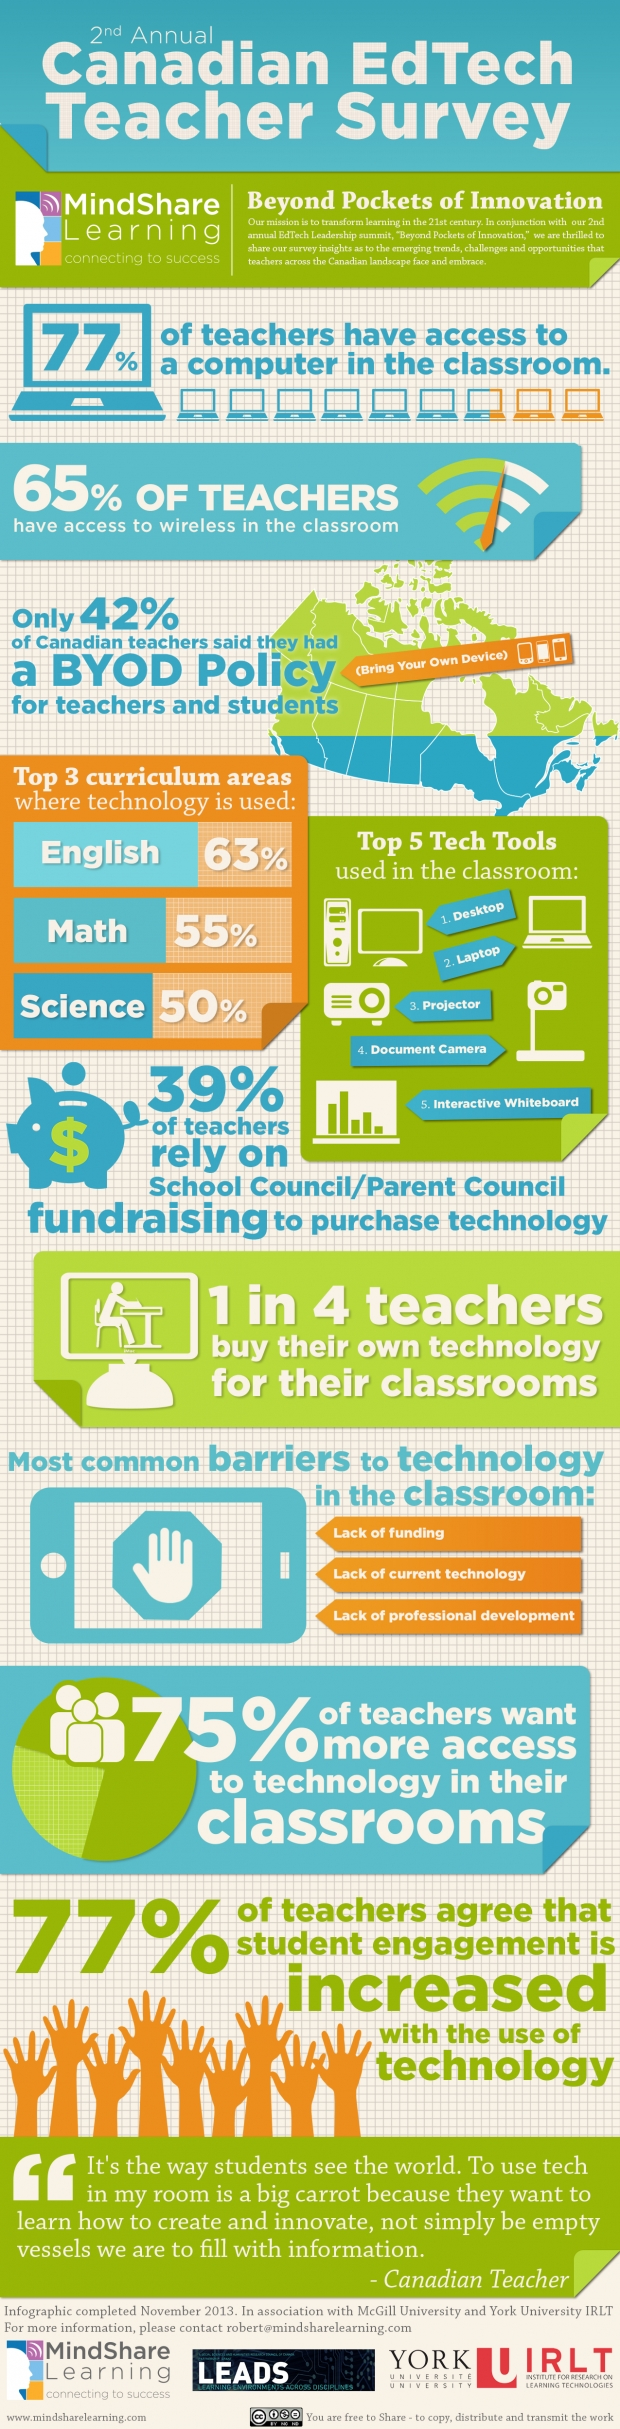 2nd annual Canadian EdTech teacher survey